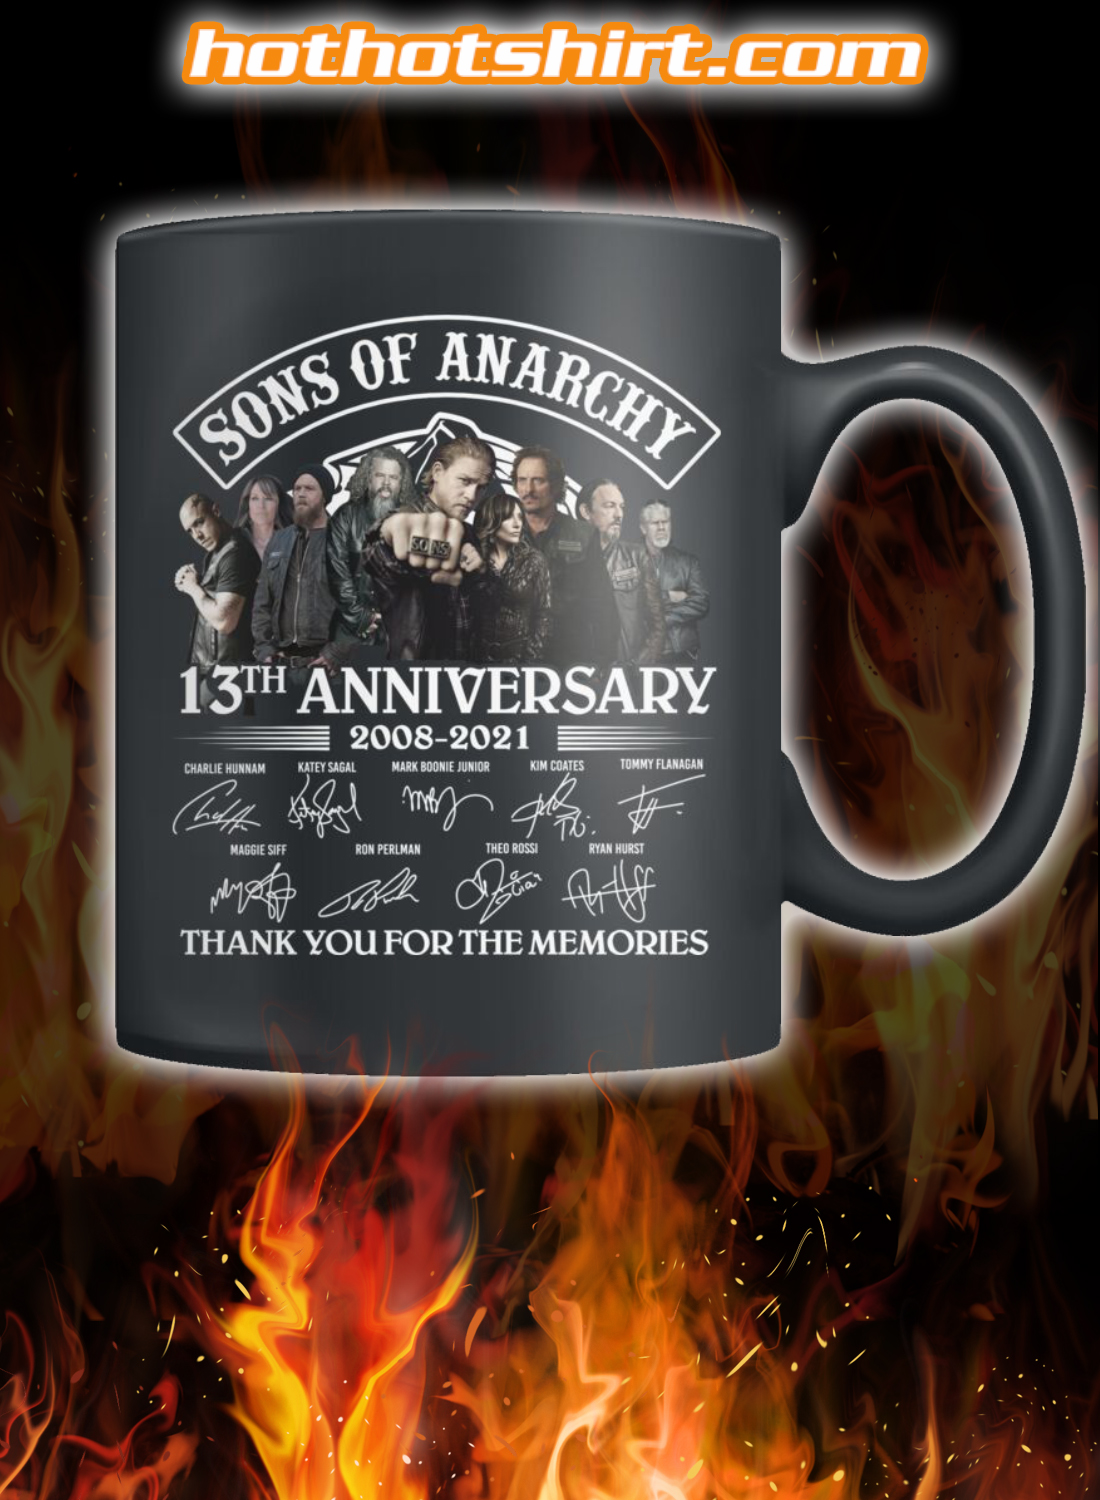 Sons of anarchy 13th anniversary 2008 2021 thank you for the memories mug